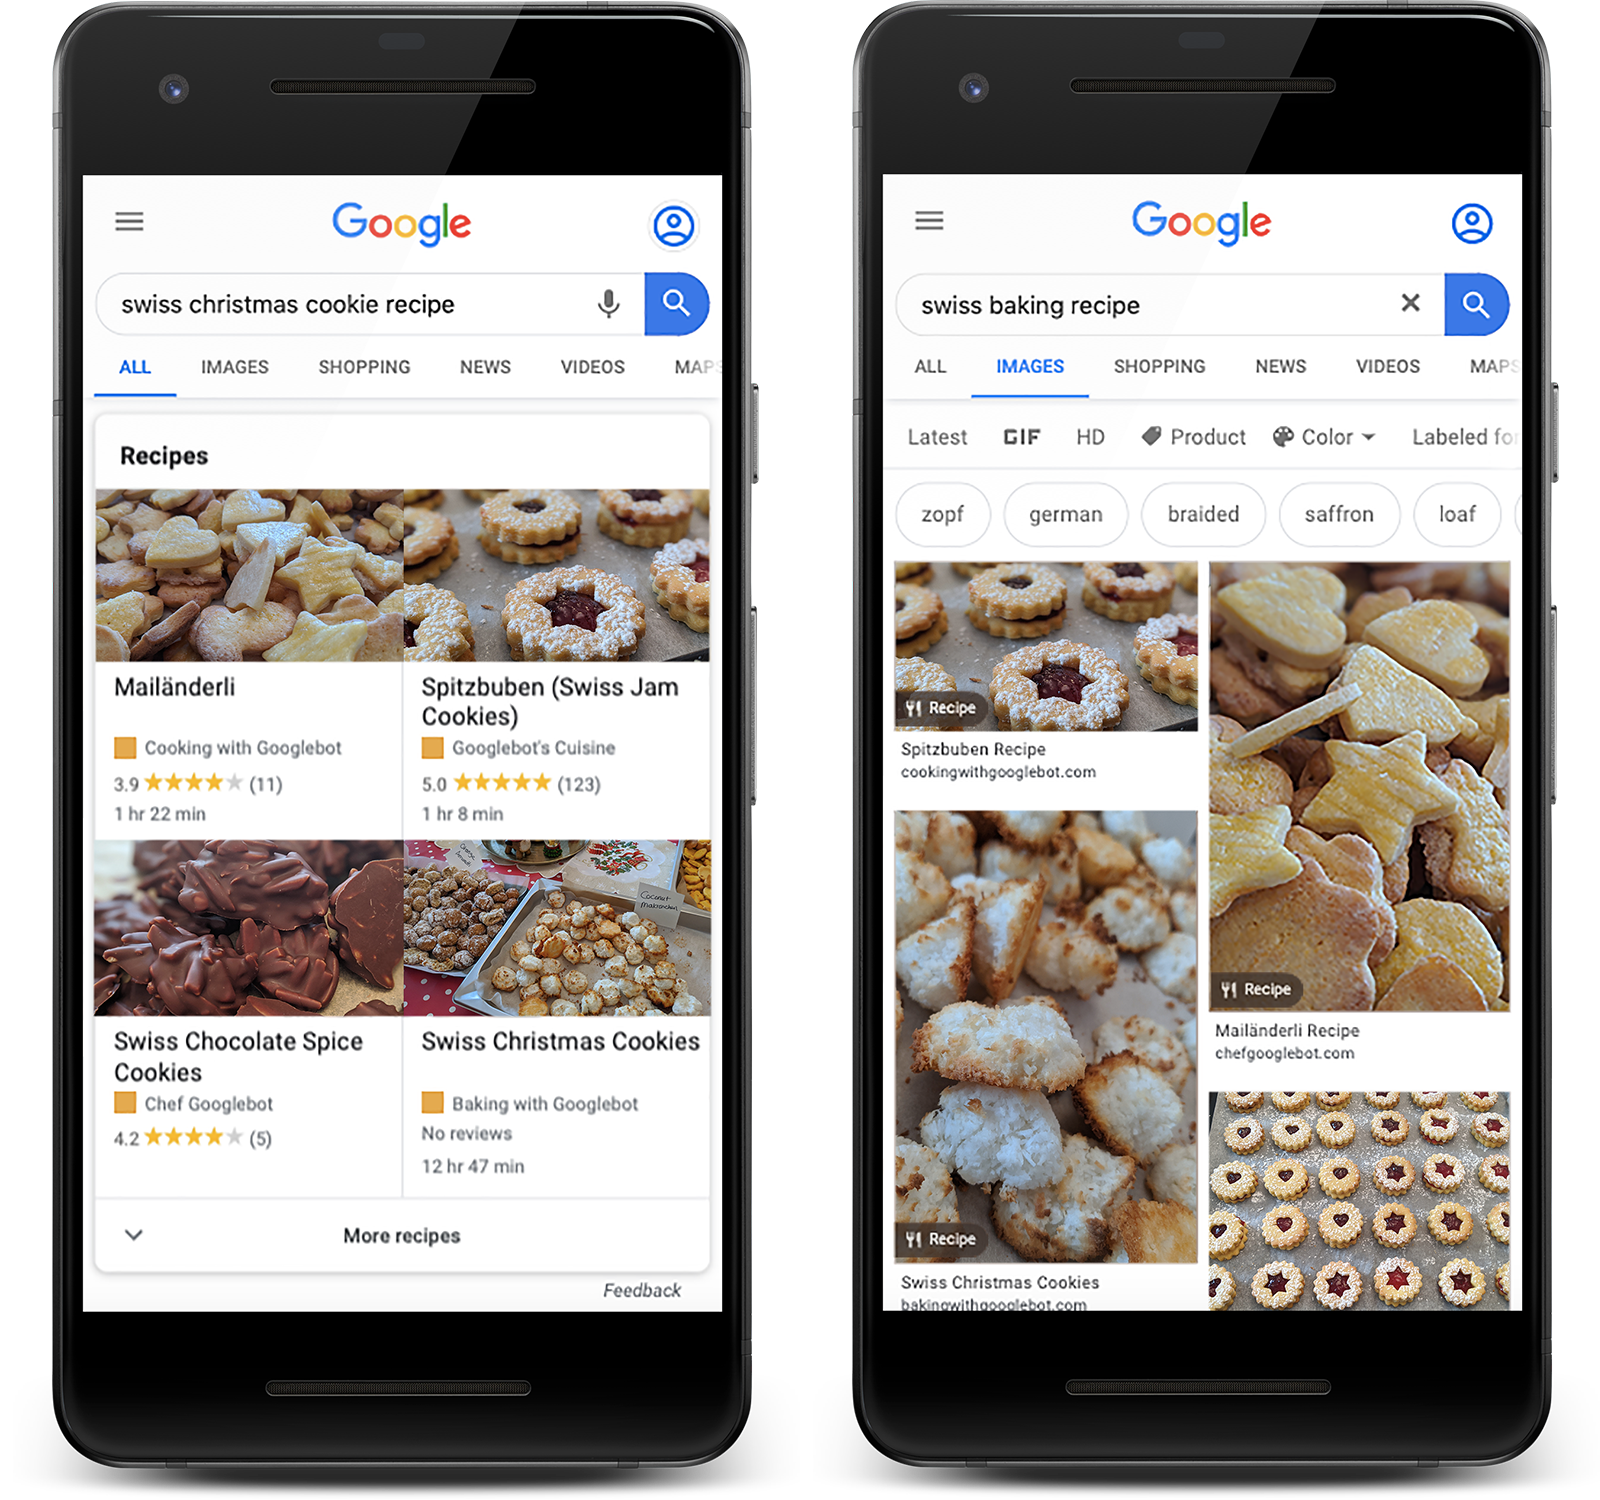 Recipes in Google Search and Google Images